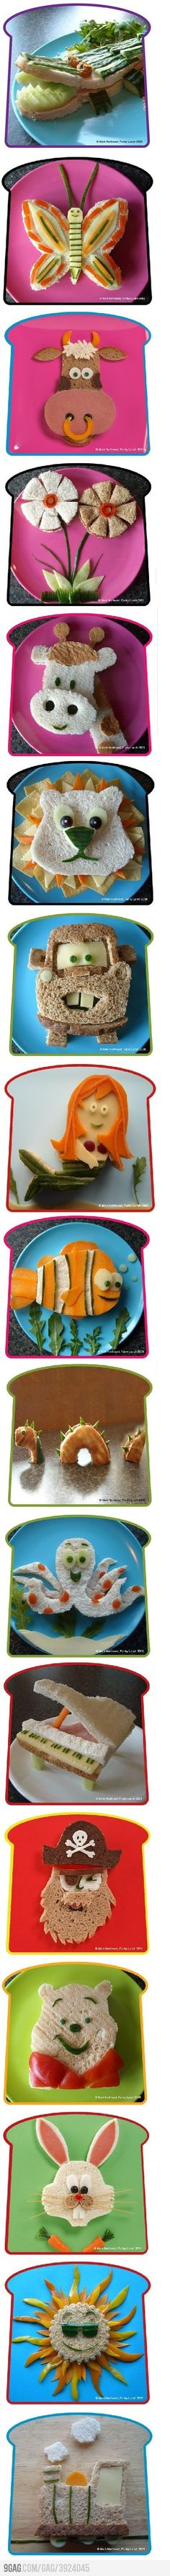 Sandwich art?    Give me a break!   Someone either has no kids to actually eat this or too much time on their hands (or has learned how to stay off Pinterest. Ha ha). While these are really adorable I'm wondering... Who's getting the laundry done?  Who's helping with homework questions? Sorry for the rant, just mumbling over here.  :)